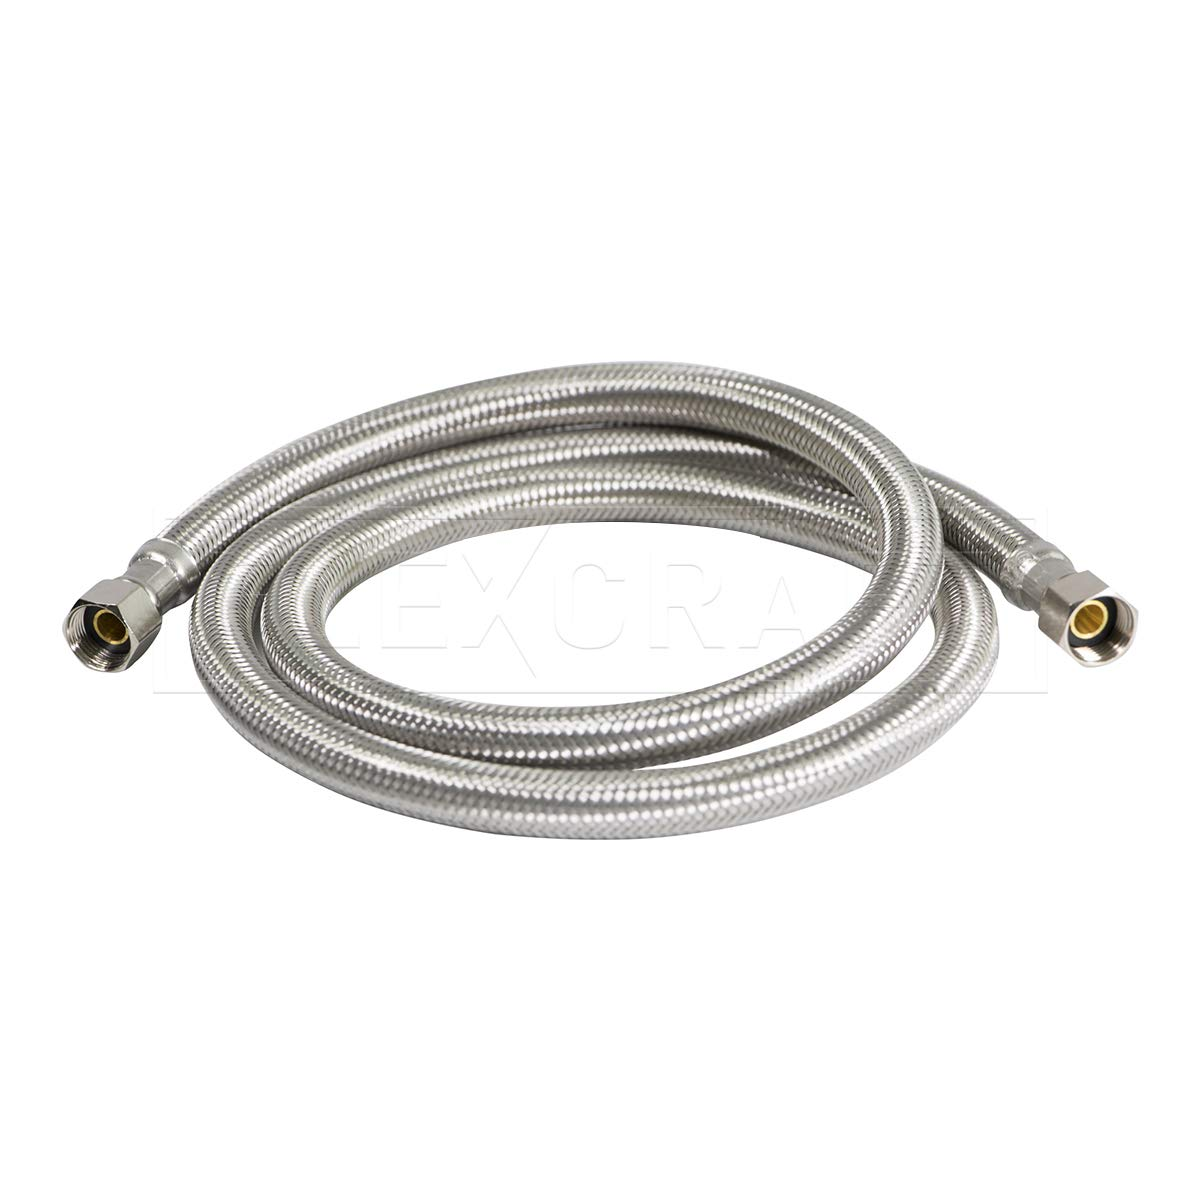 FlexCraft 26610-NL, Ice Maker Supply Line, Connects Ice Maker to Water Supply, Ice Maker Hose With 1/4 in Fittings On Both Ends, Braided Stainless Steel 10 Ft